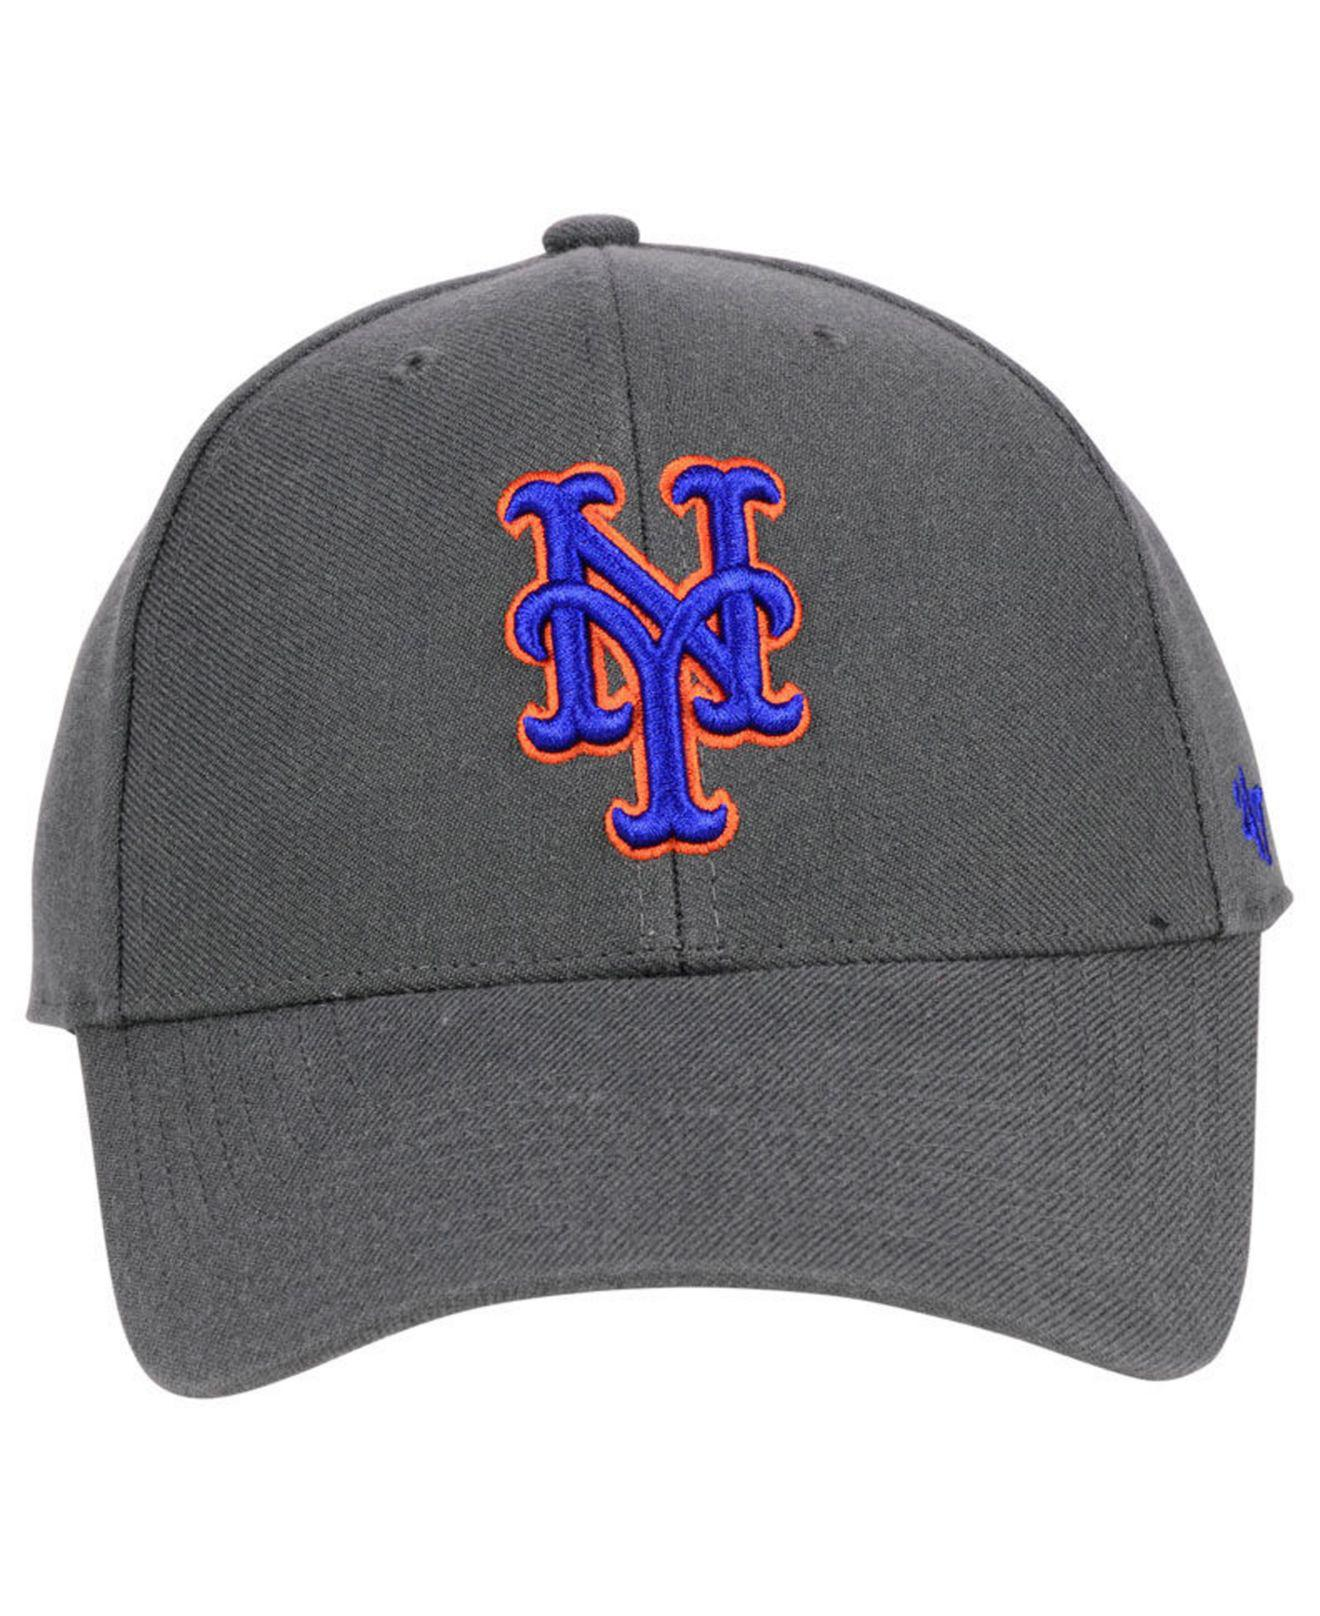 new product a8bae 1335a ... switzerland lyst 47 brand new york mets charcoal mvp cap in gray for men  f8750 99fae